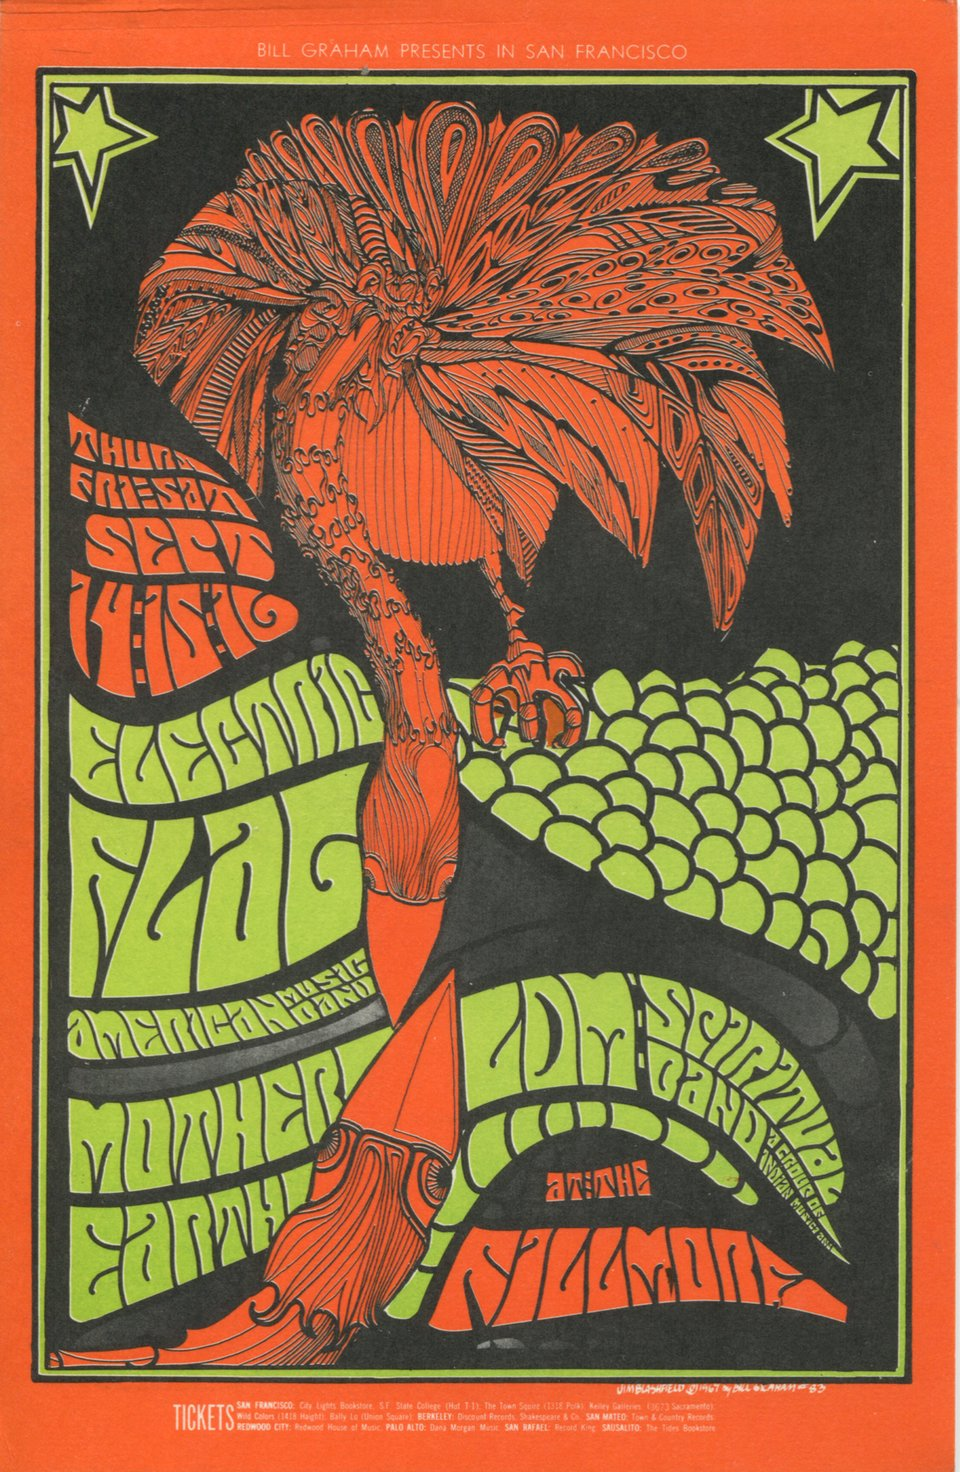 Electric Flag, Mother Earth, LDM Spiritual Band – Vintage poster – Jim Blashfield – 1967